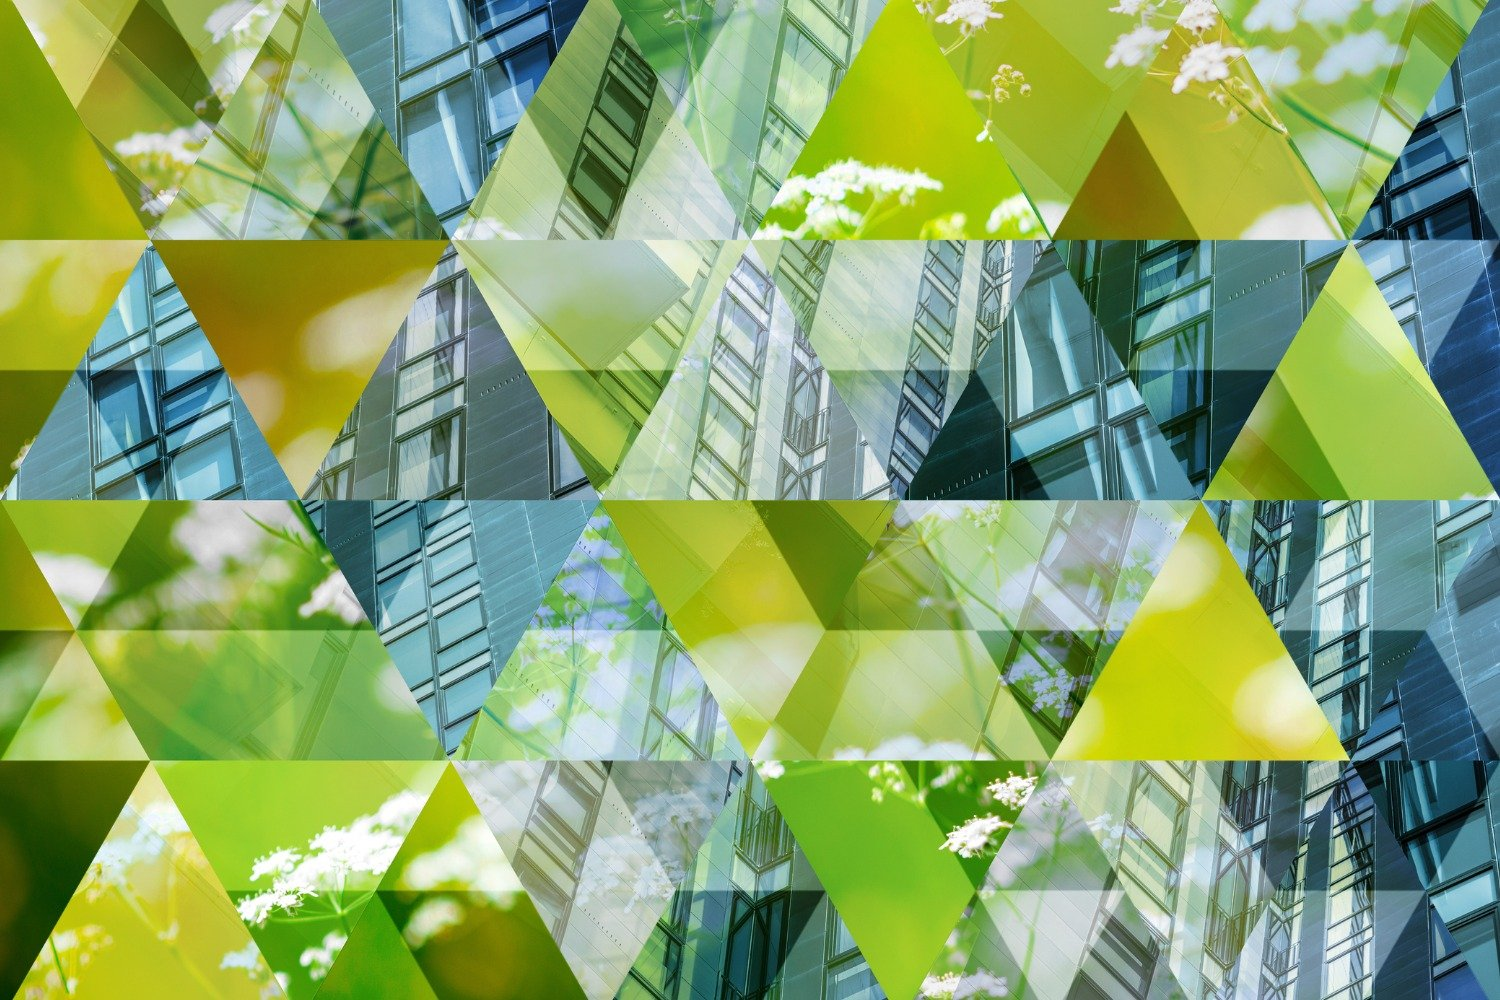 abstract-triangle-mosaic-background-green-architecture-picture-id1124645001